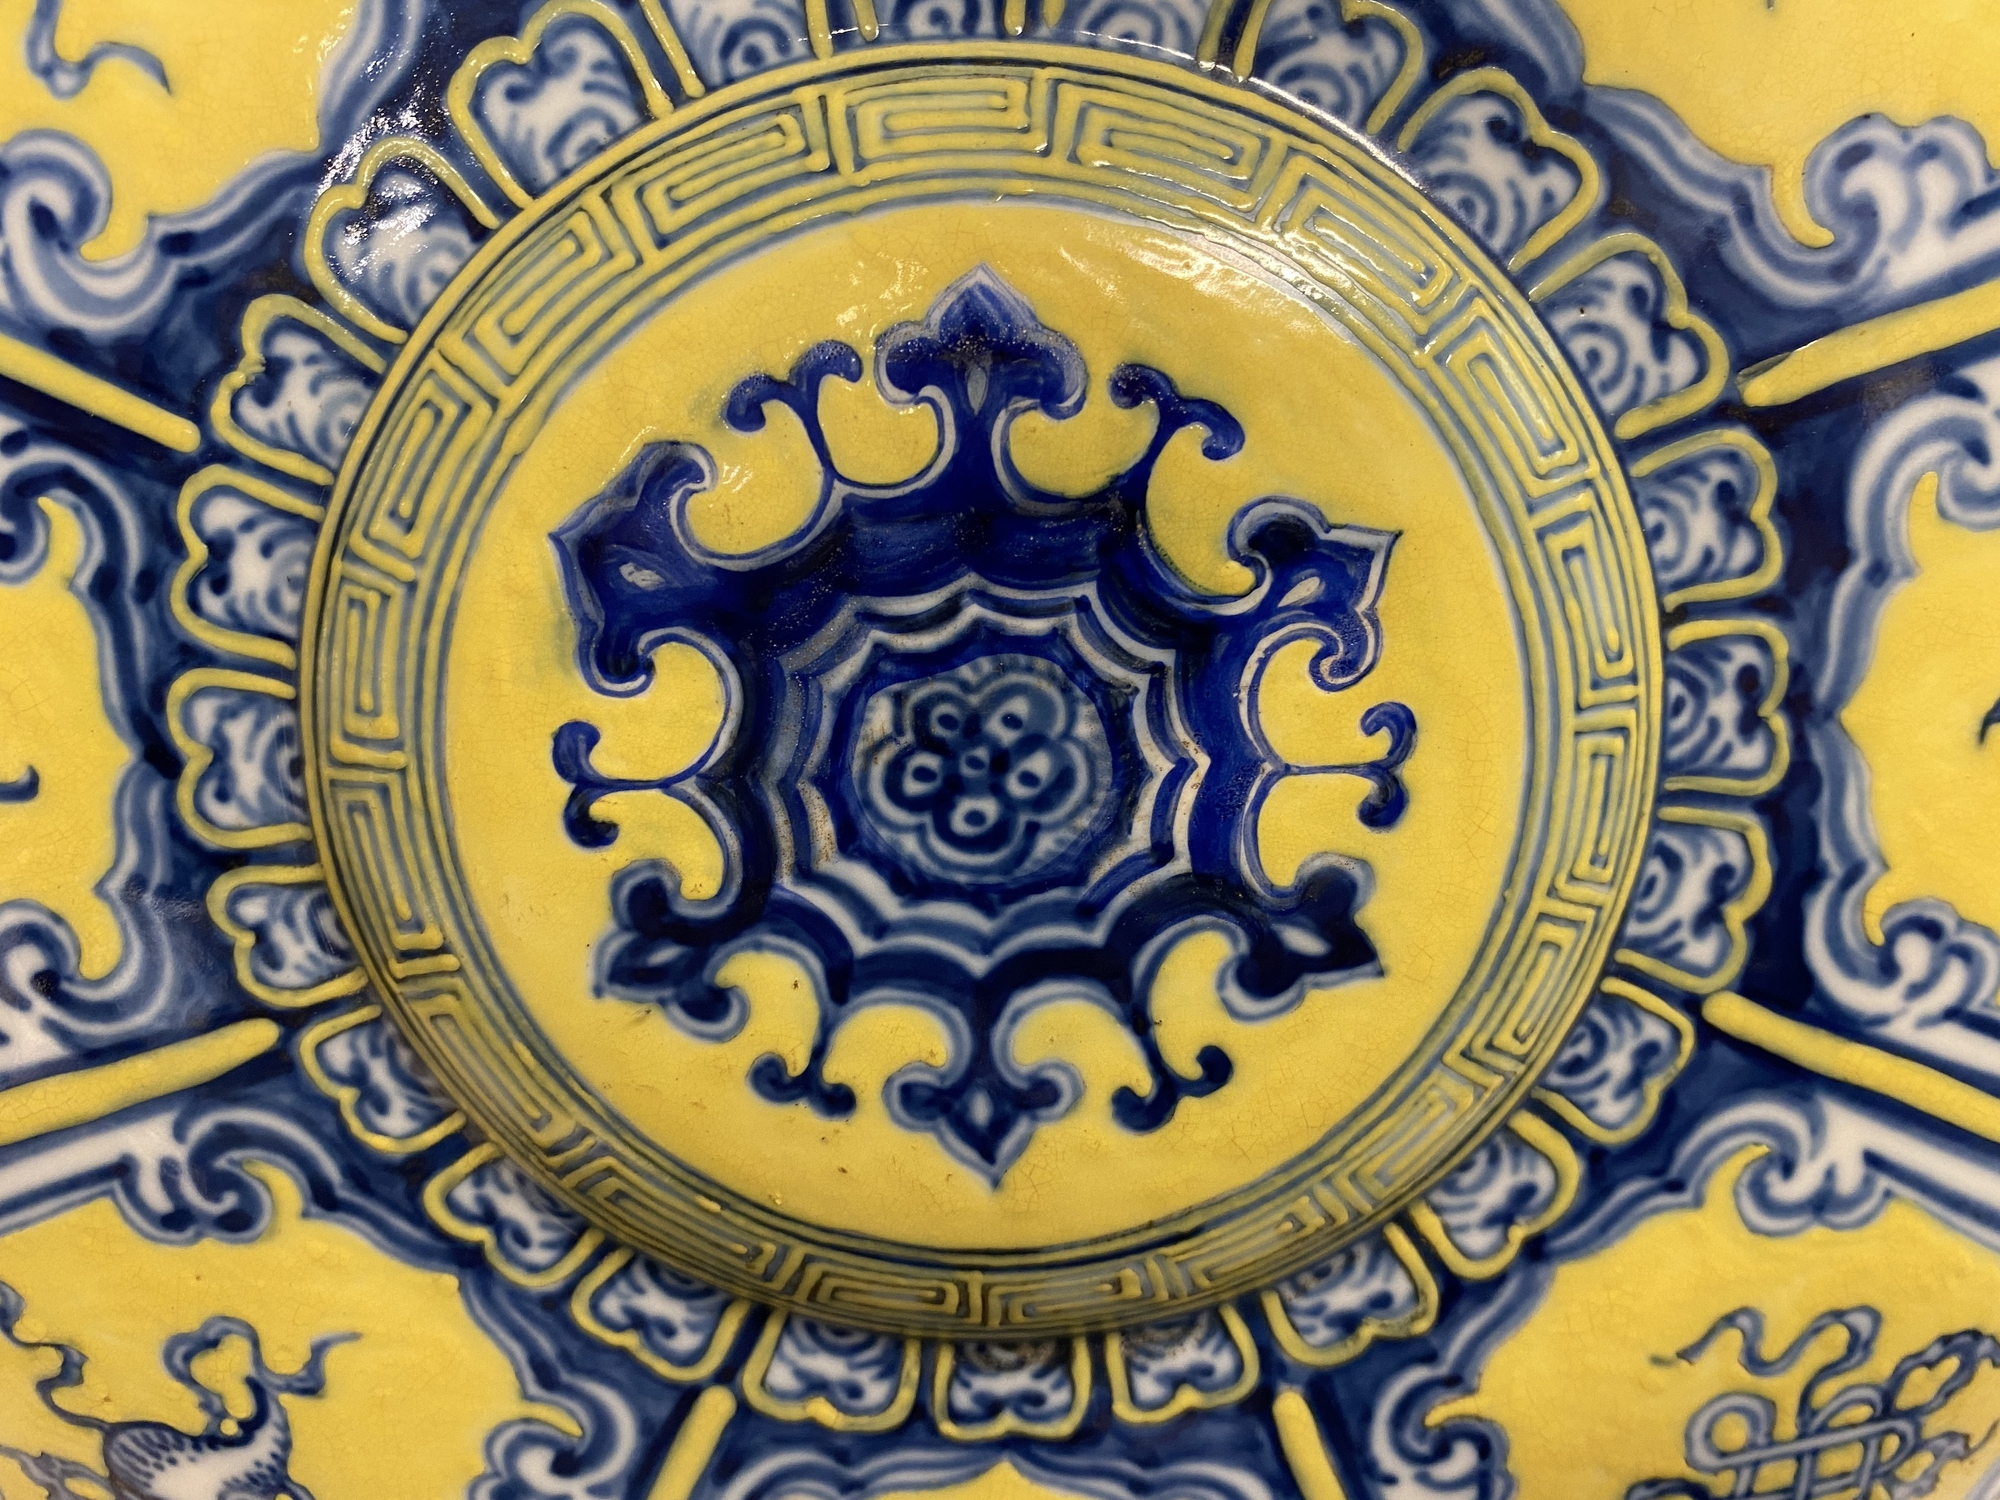 A Chinese yellow-ground blue and white 'Bajixiang' moonflask vase, Yongzheng mark, 19/20th C. - Image 11 of 20